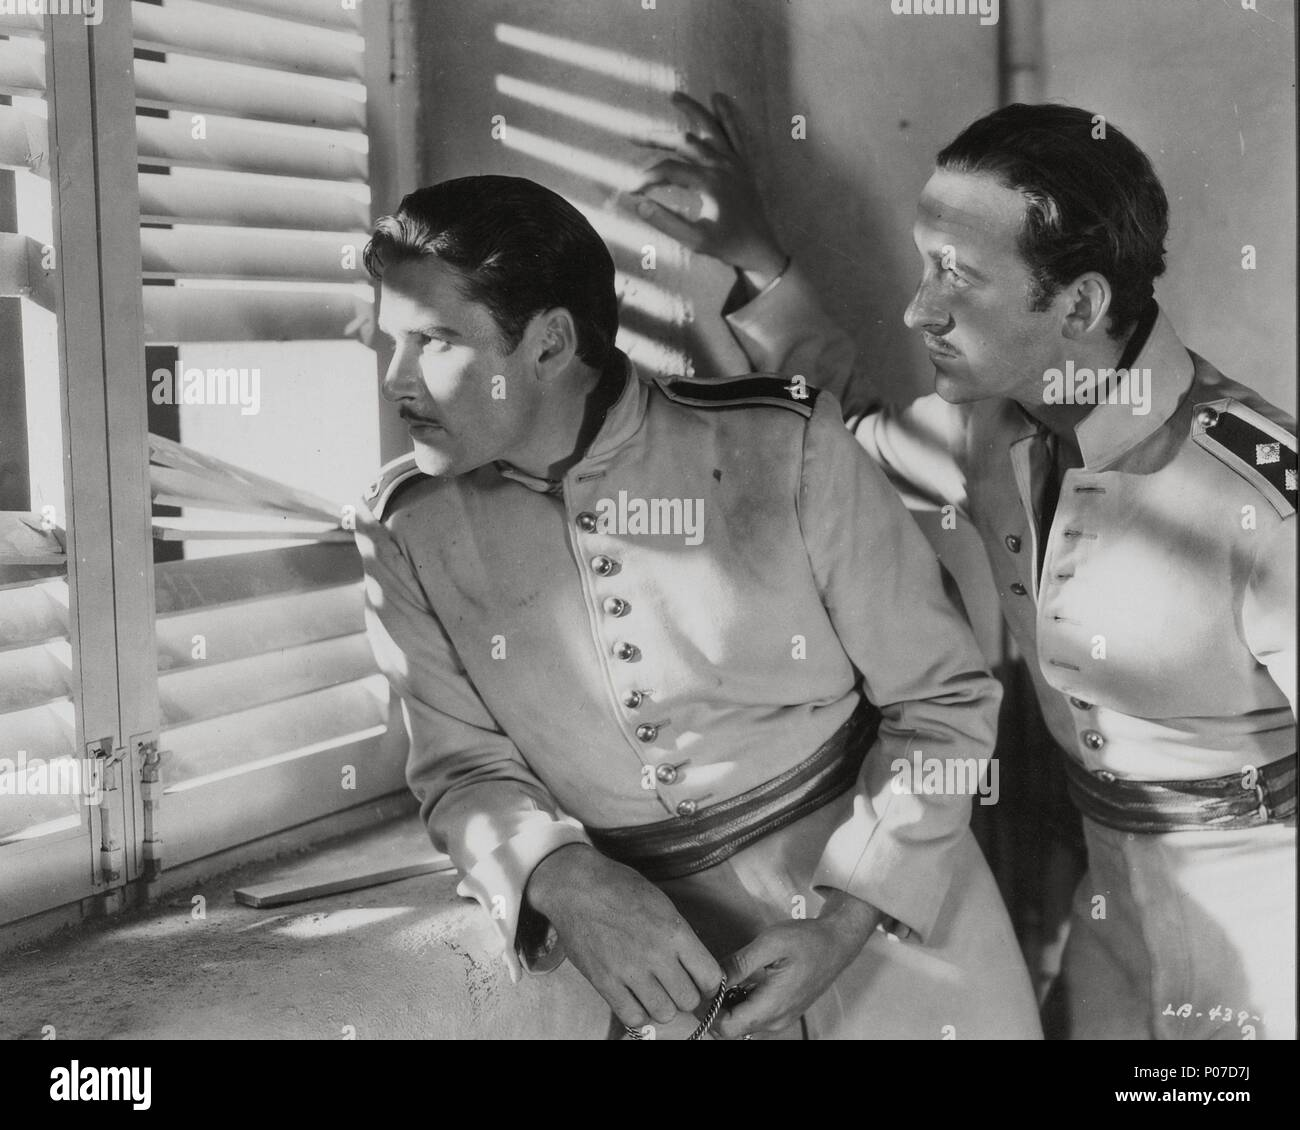 Original Film Title: THE CHARGE OF THE LIGHT BRIGADE.  English Title: THE CHARGE OF THE LIGHT BRIGADE.  Film Director: MICHAEL CURTIZ.  Year: 1936.  Stars: ERROL FLYNN; DAVID NIVEN. Credit: WARNER BROTHERS / Album - Stock Image